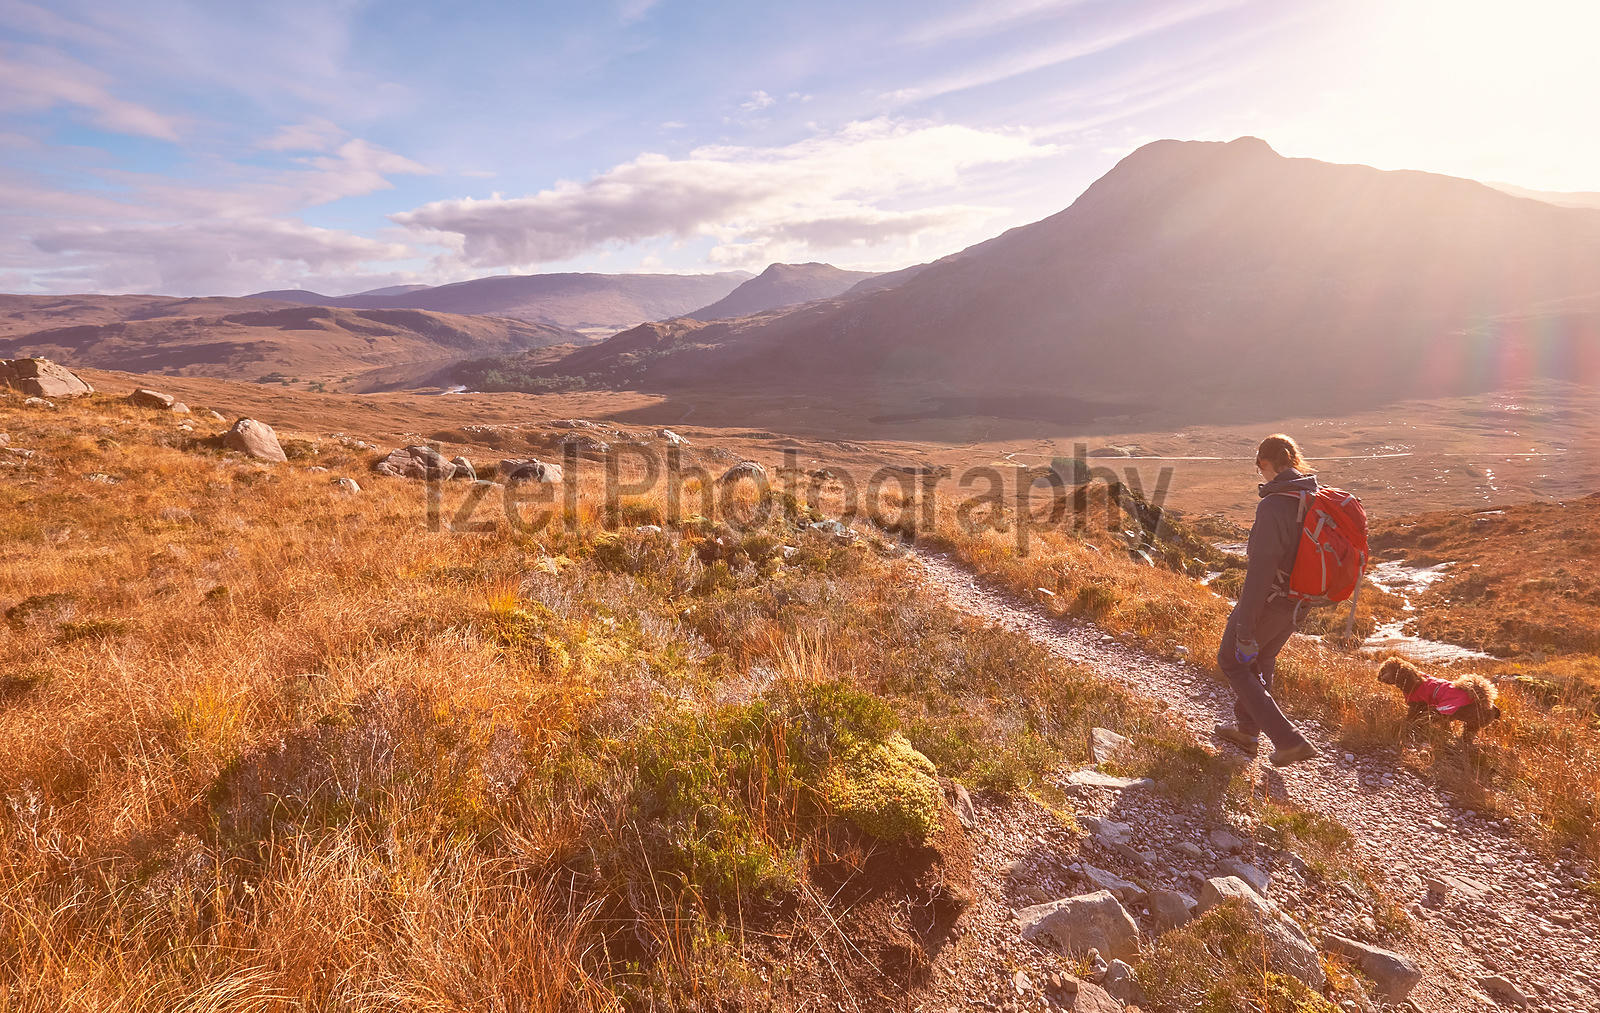 Mountain Photography, Hiking in the Scottish Highlands